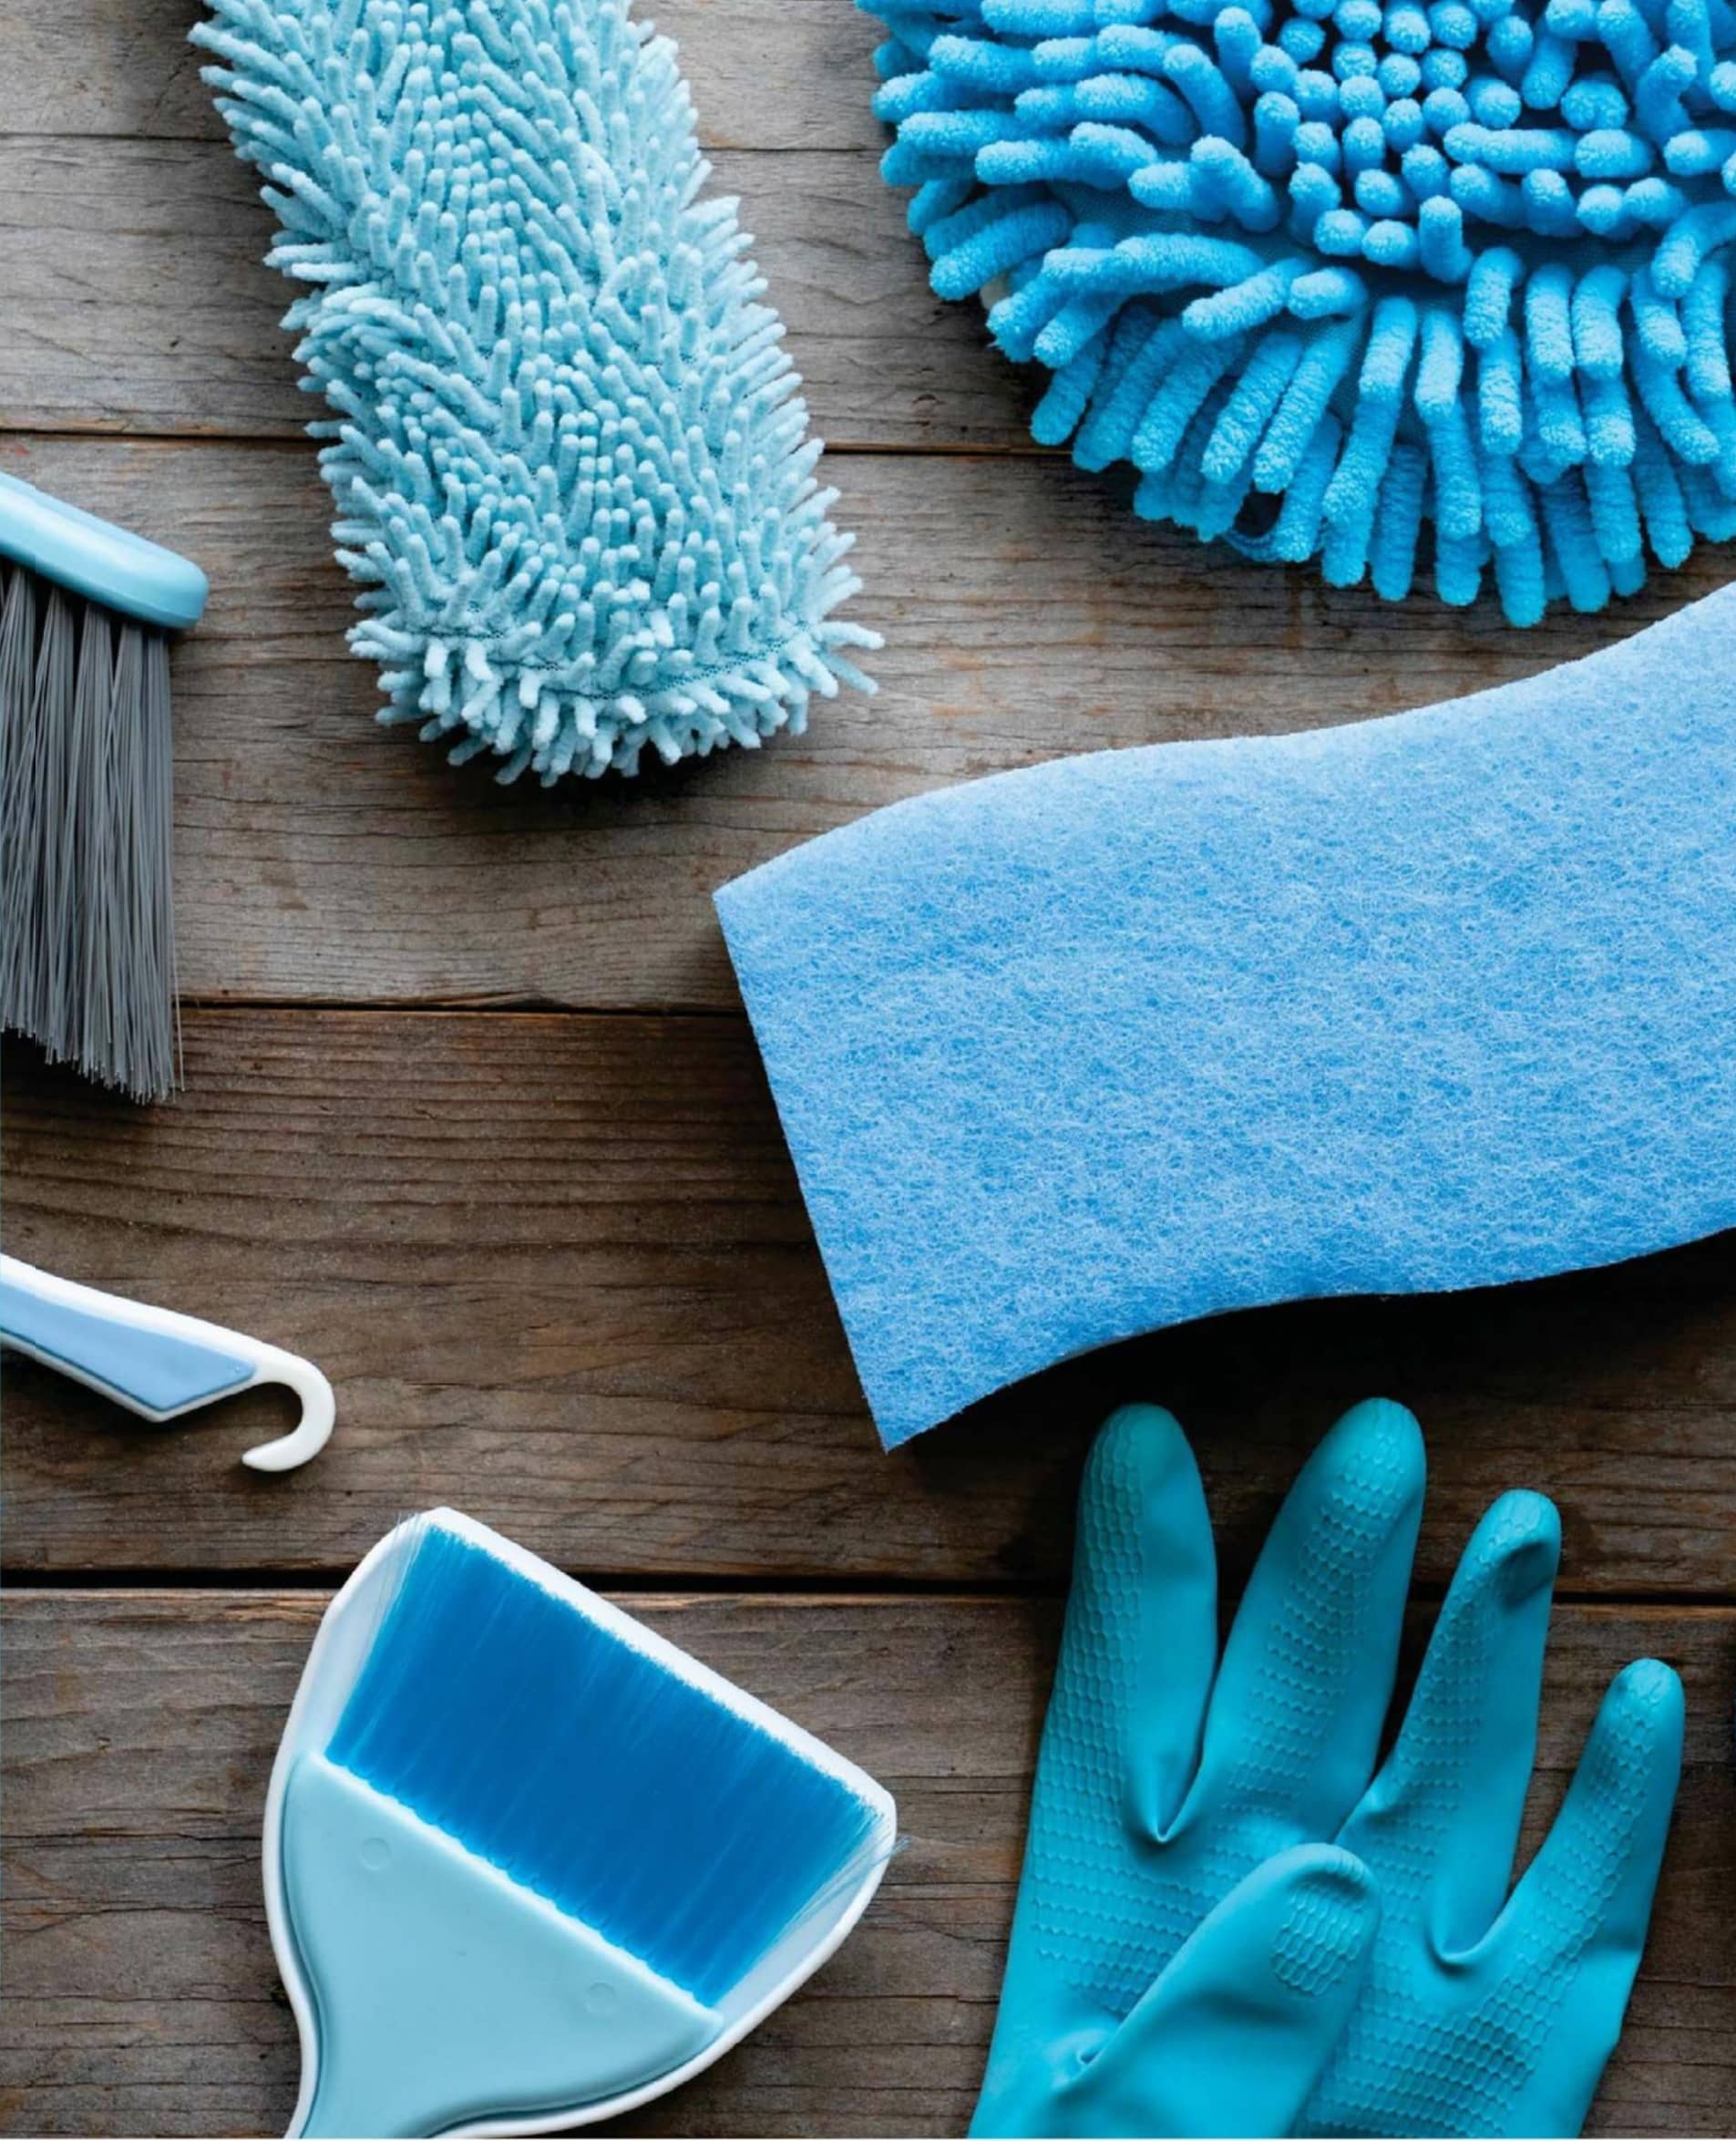 How To Clean Up - Sanitary Franchises To Invest In